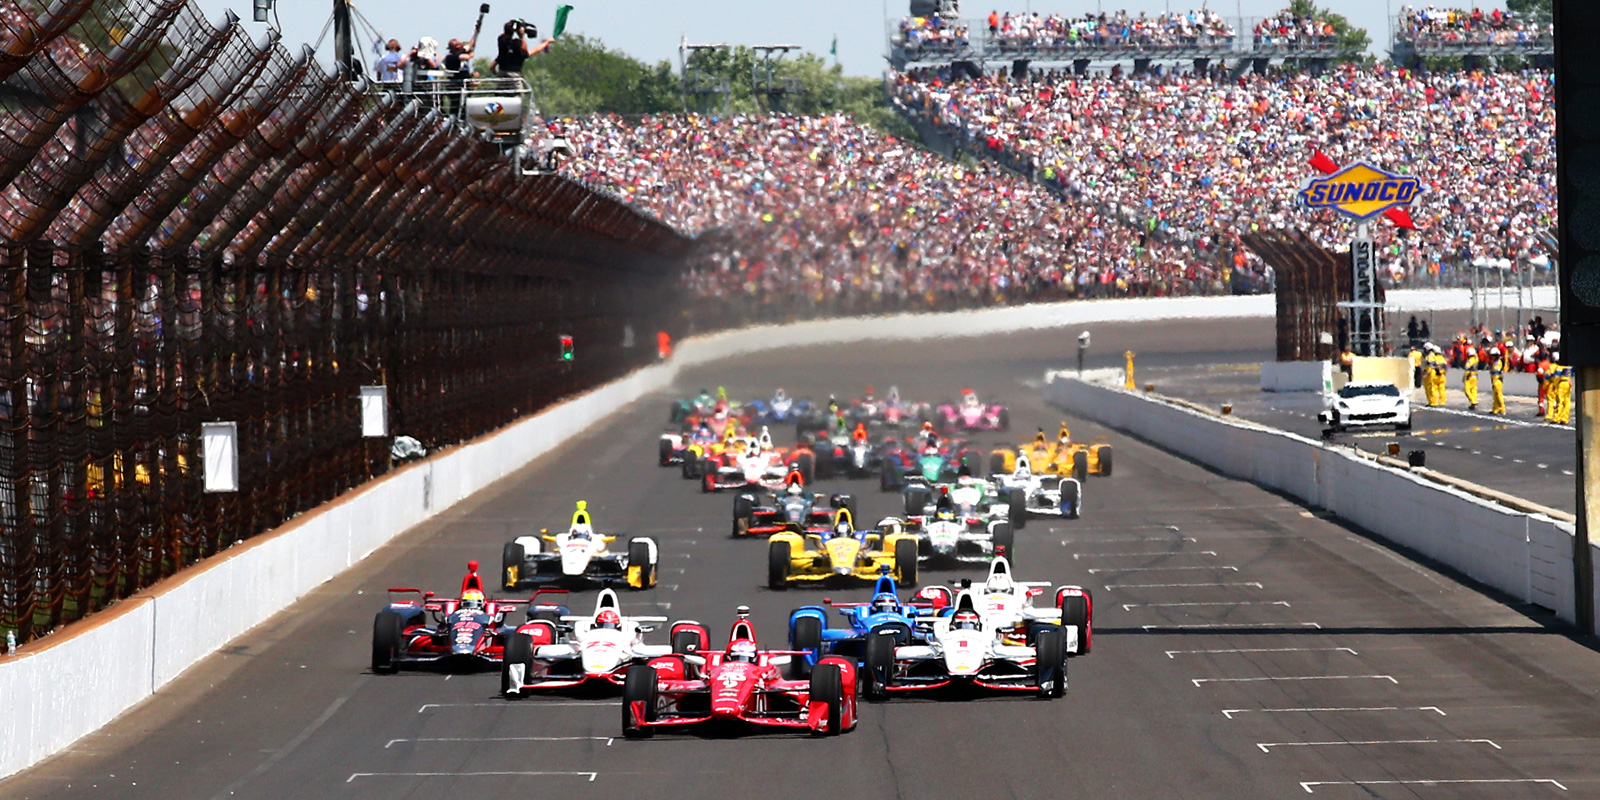 Record Heat for Indy 500, Hundreds Treated for Heat Illness